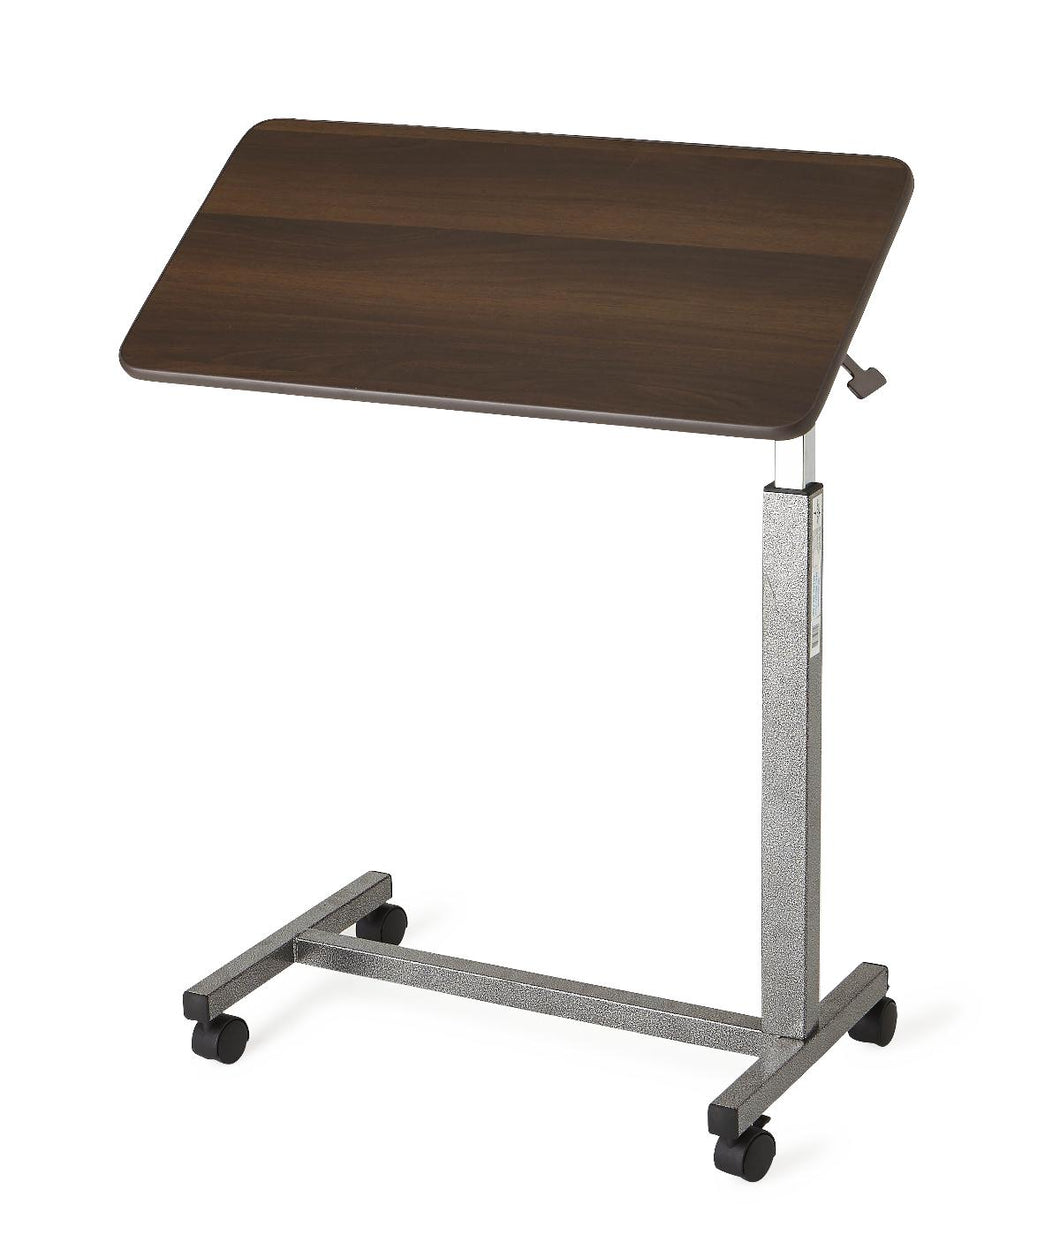 Tilt Top H-Base Overbed Tables  - MDS104950